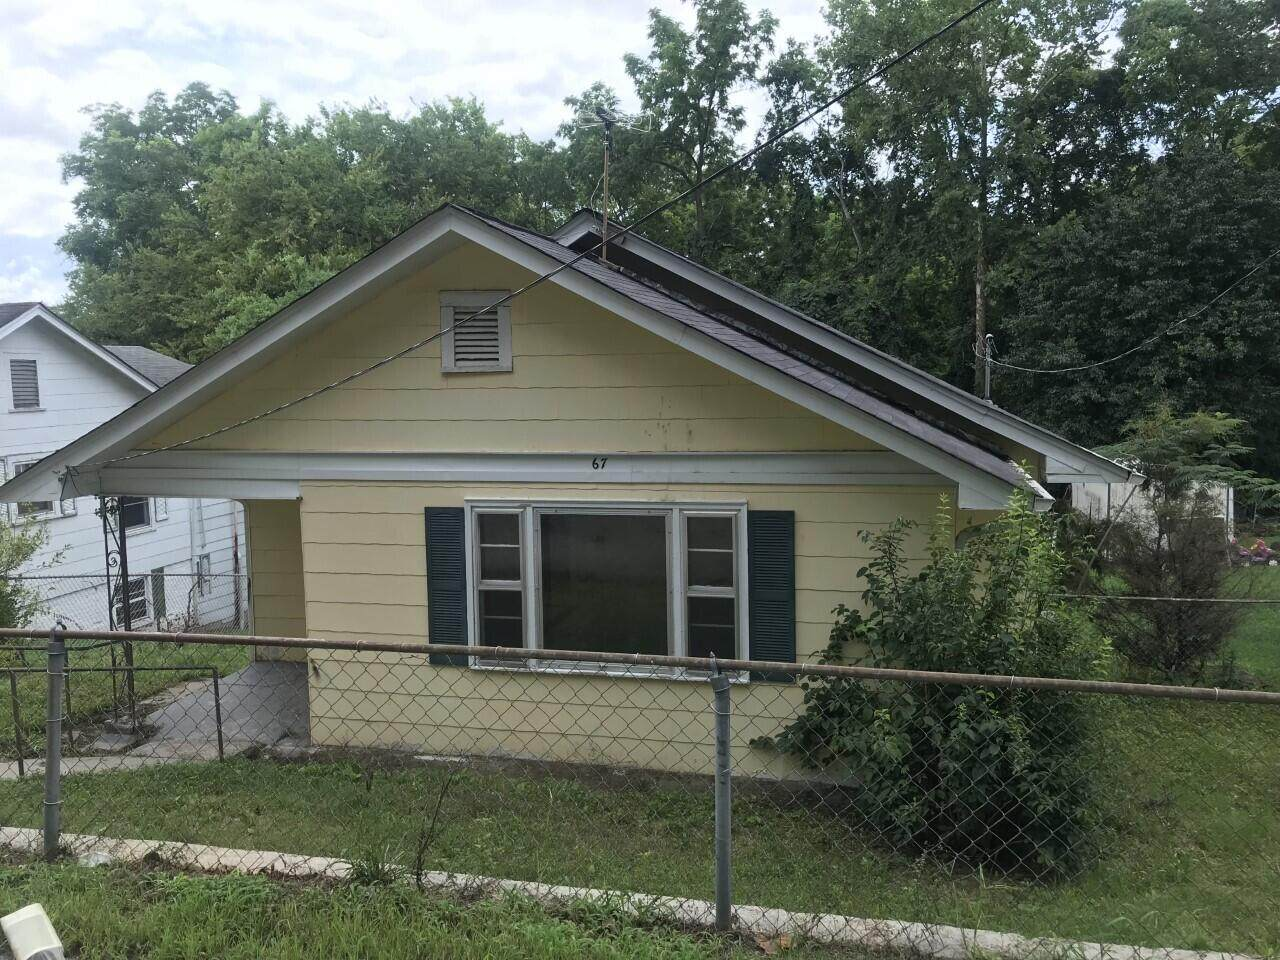 67 Hargrave Rd - Photo 1